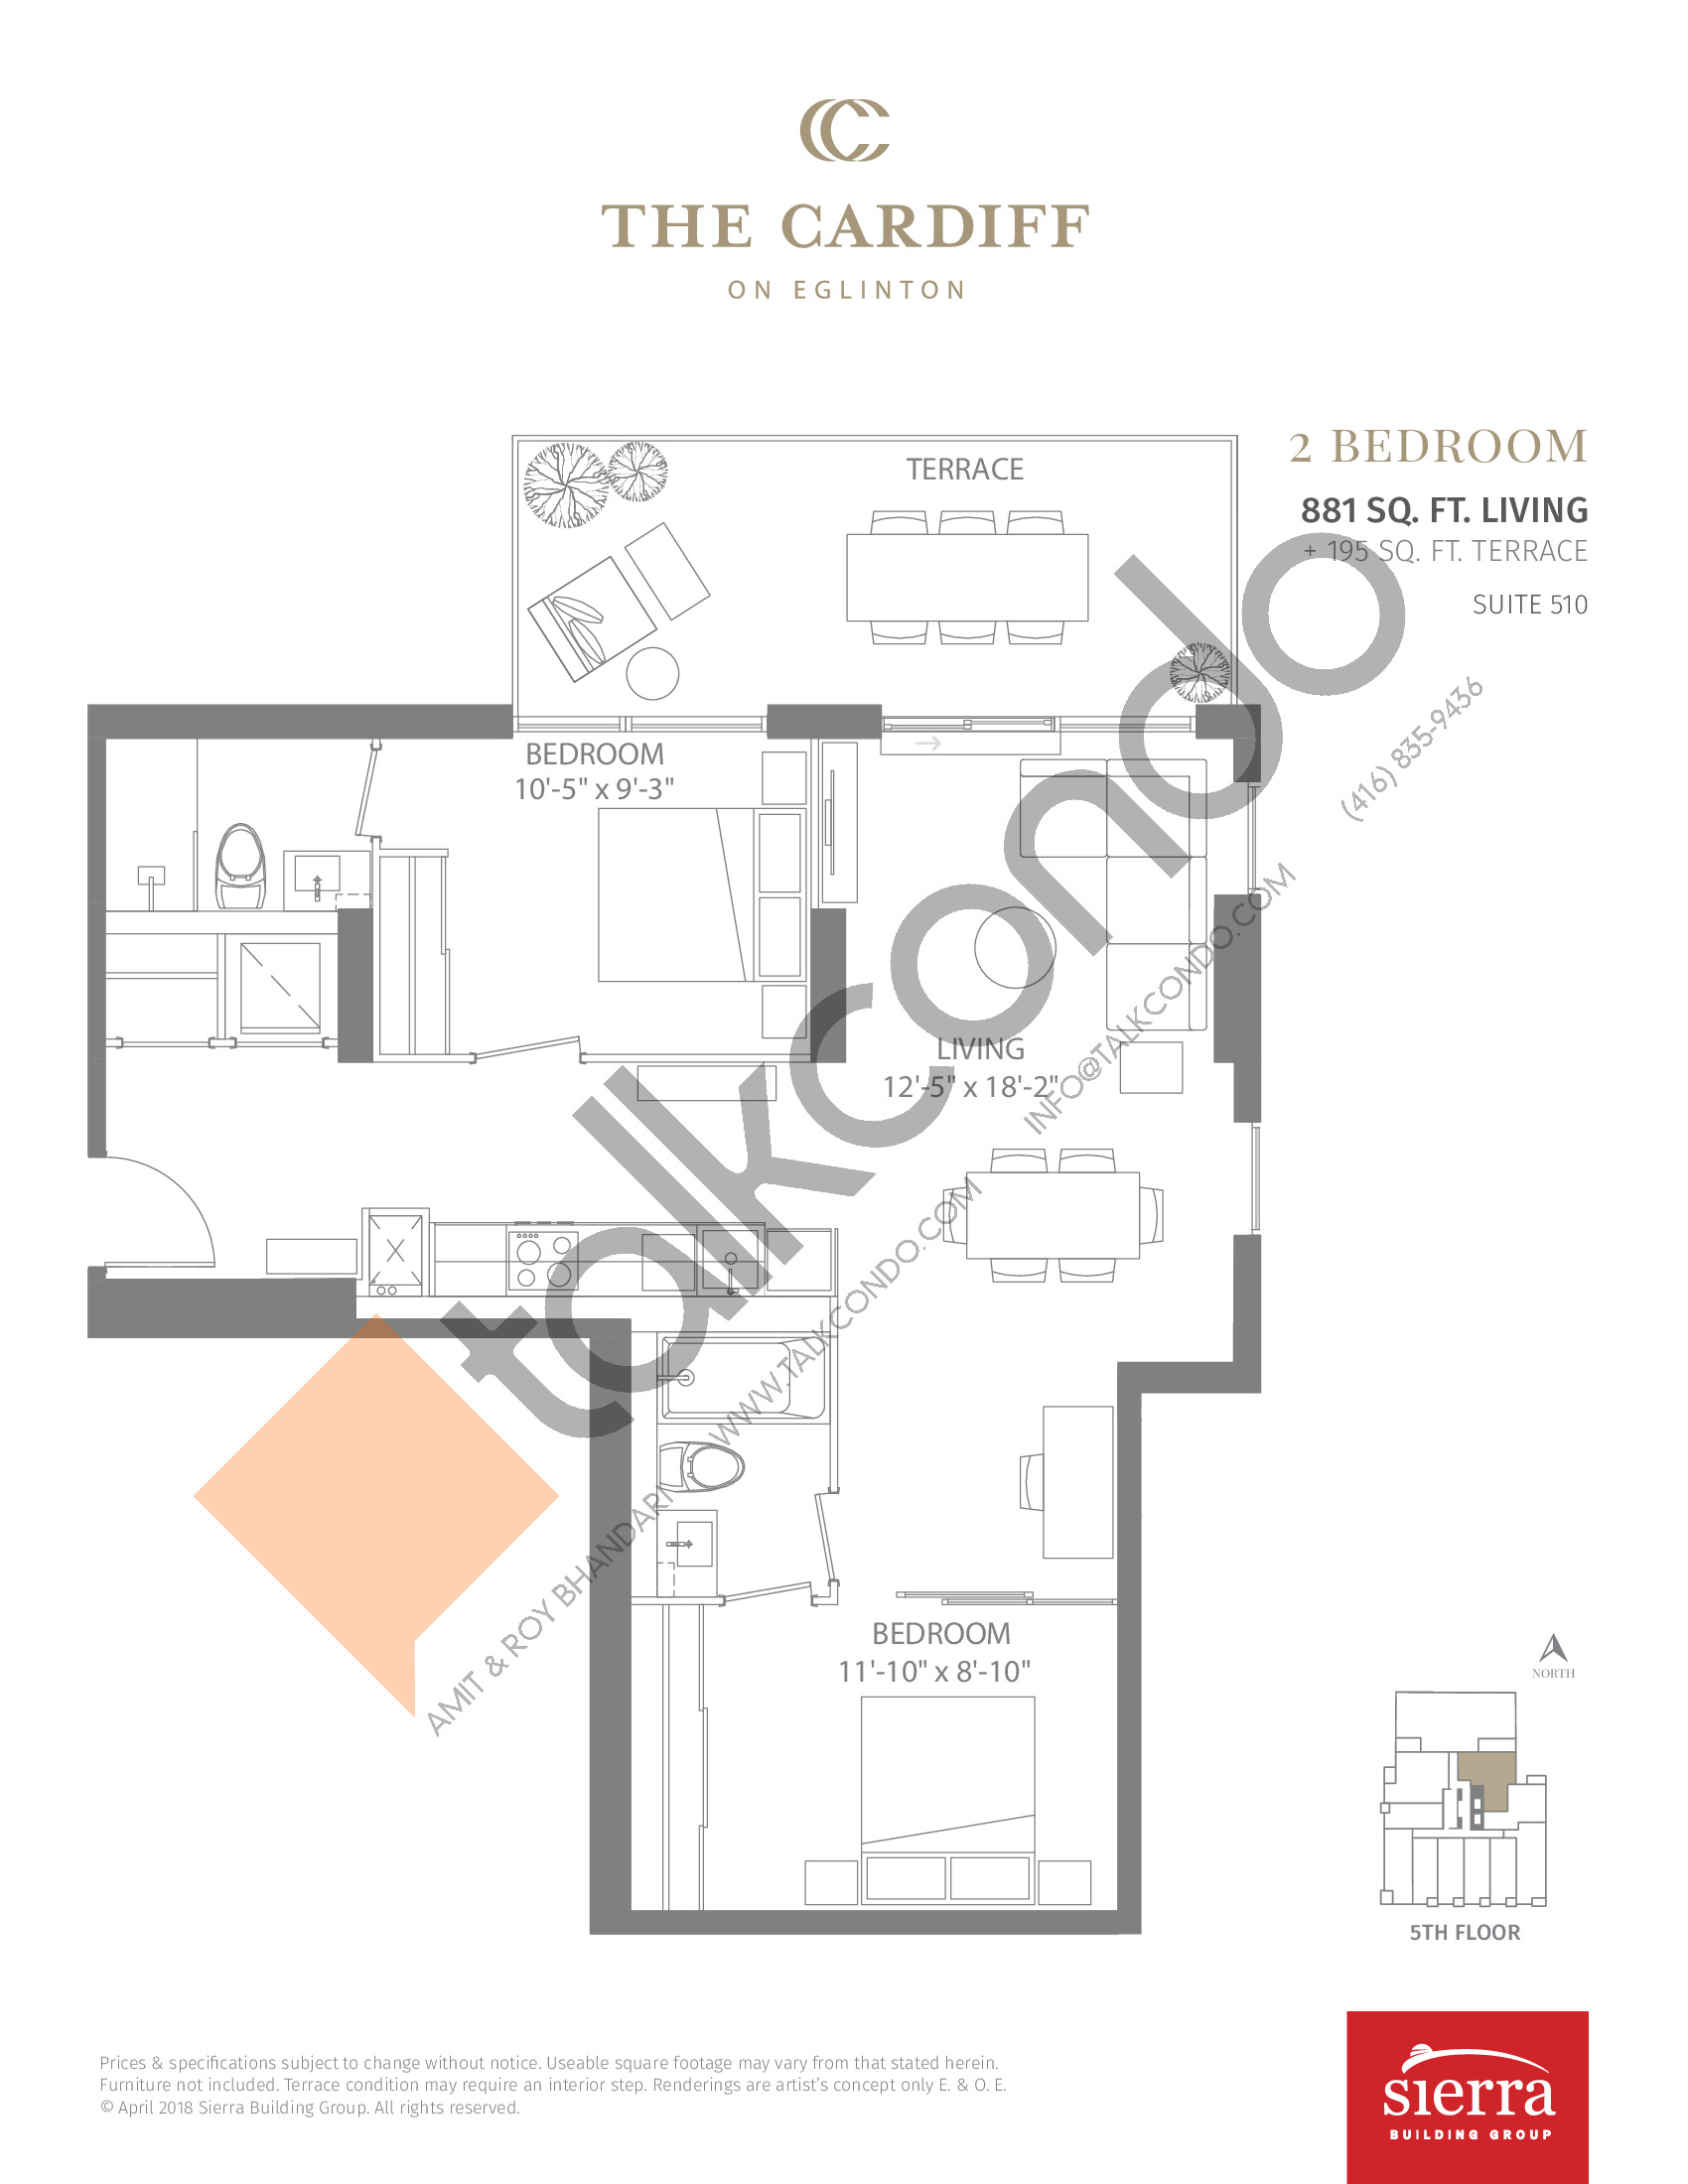 Suite 510 Floor Plan at The Cardiff Condos on Eglinton - 881 sq.ft